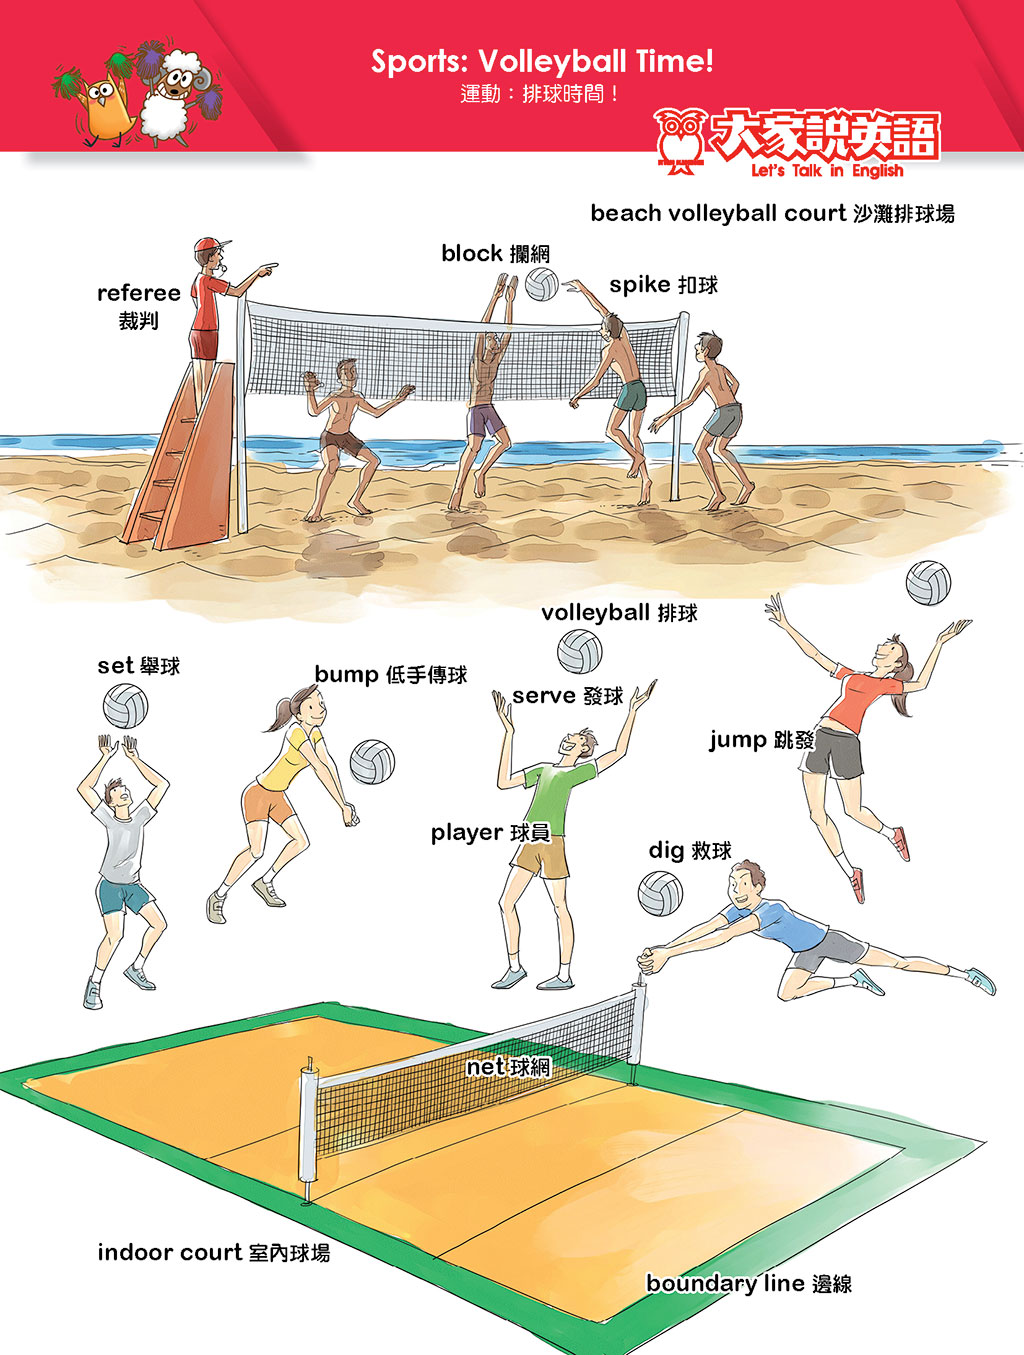 Sports: Volleyball Time!